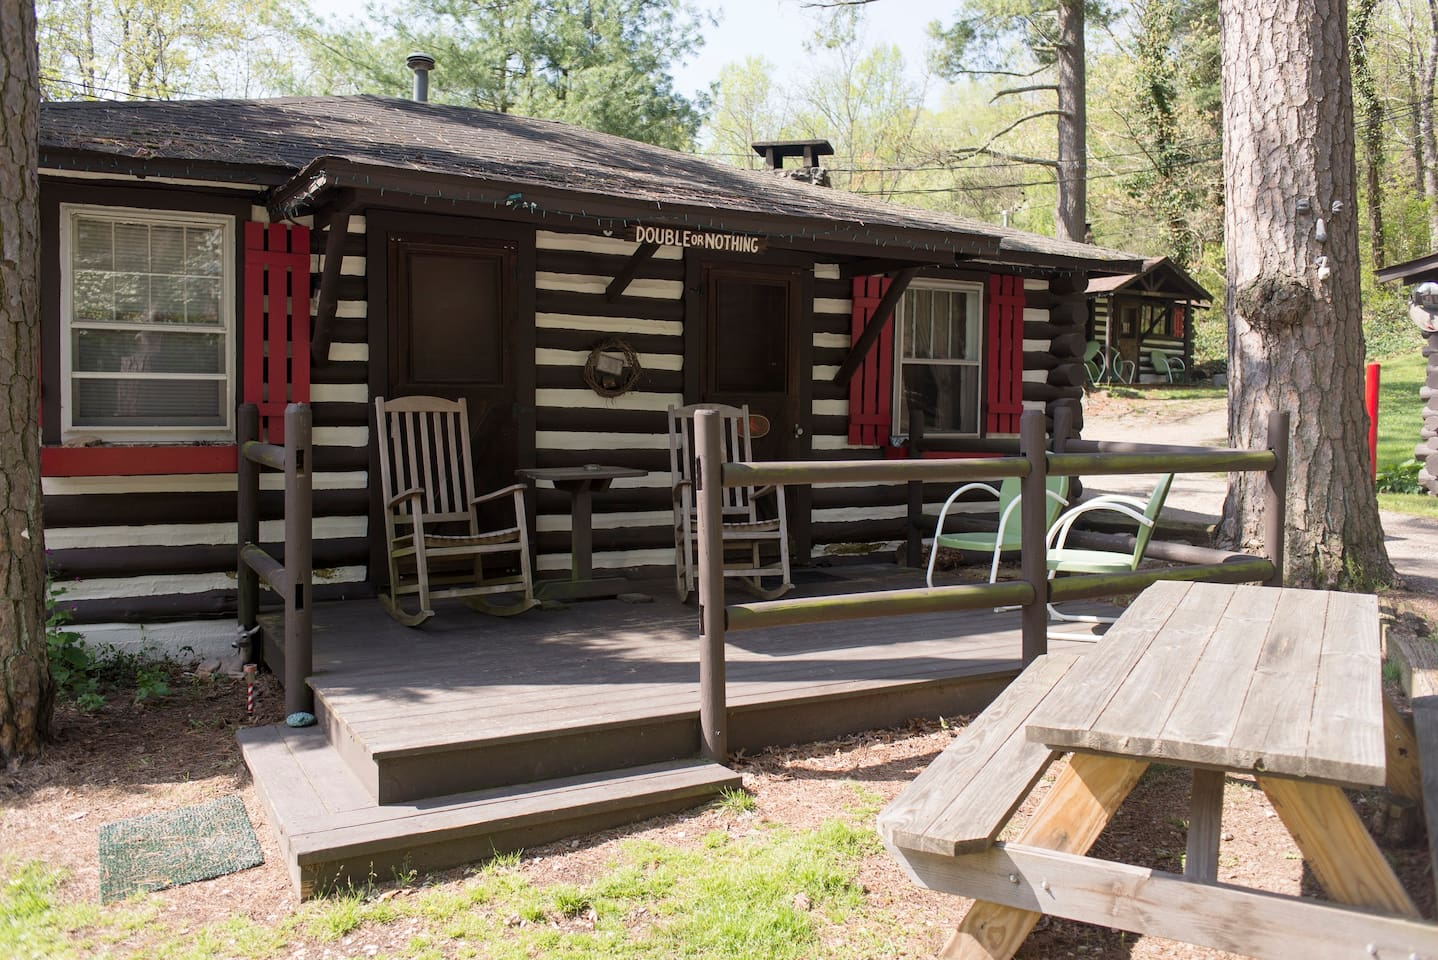 Double or Nothing cabin with rocking chair front porch and picnic table